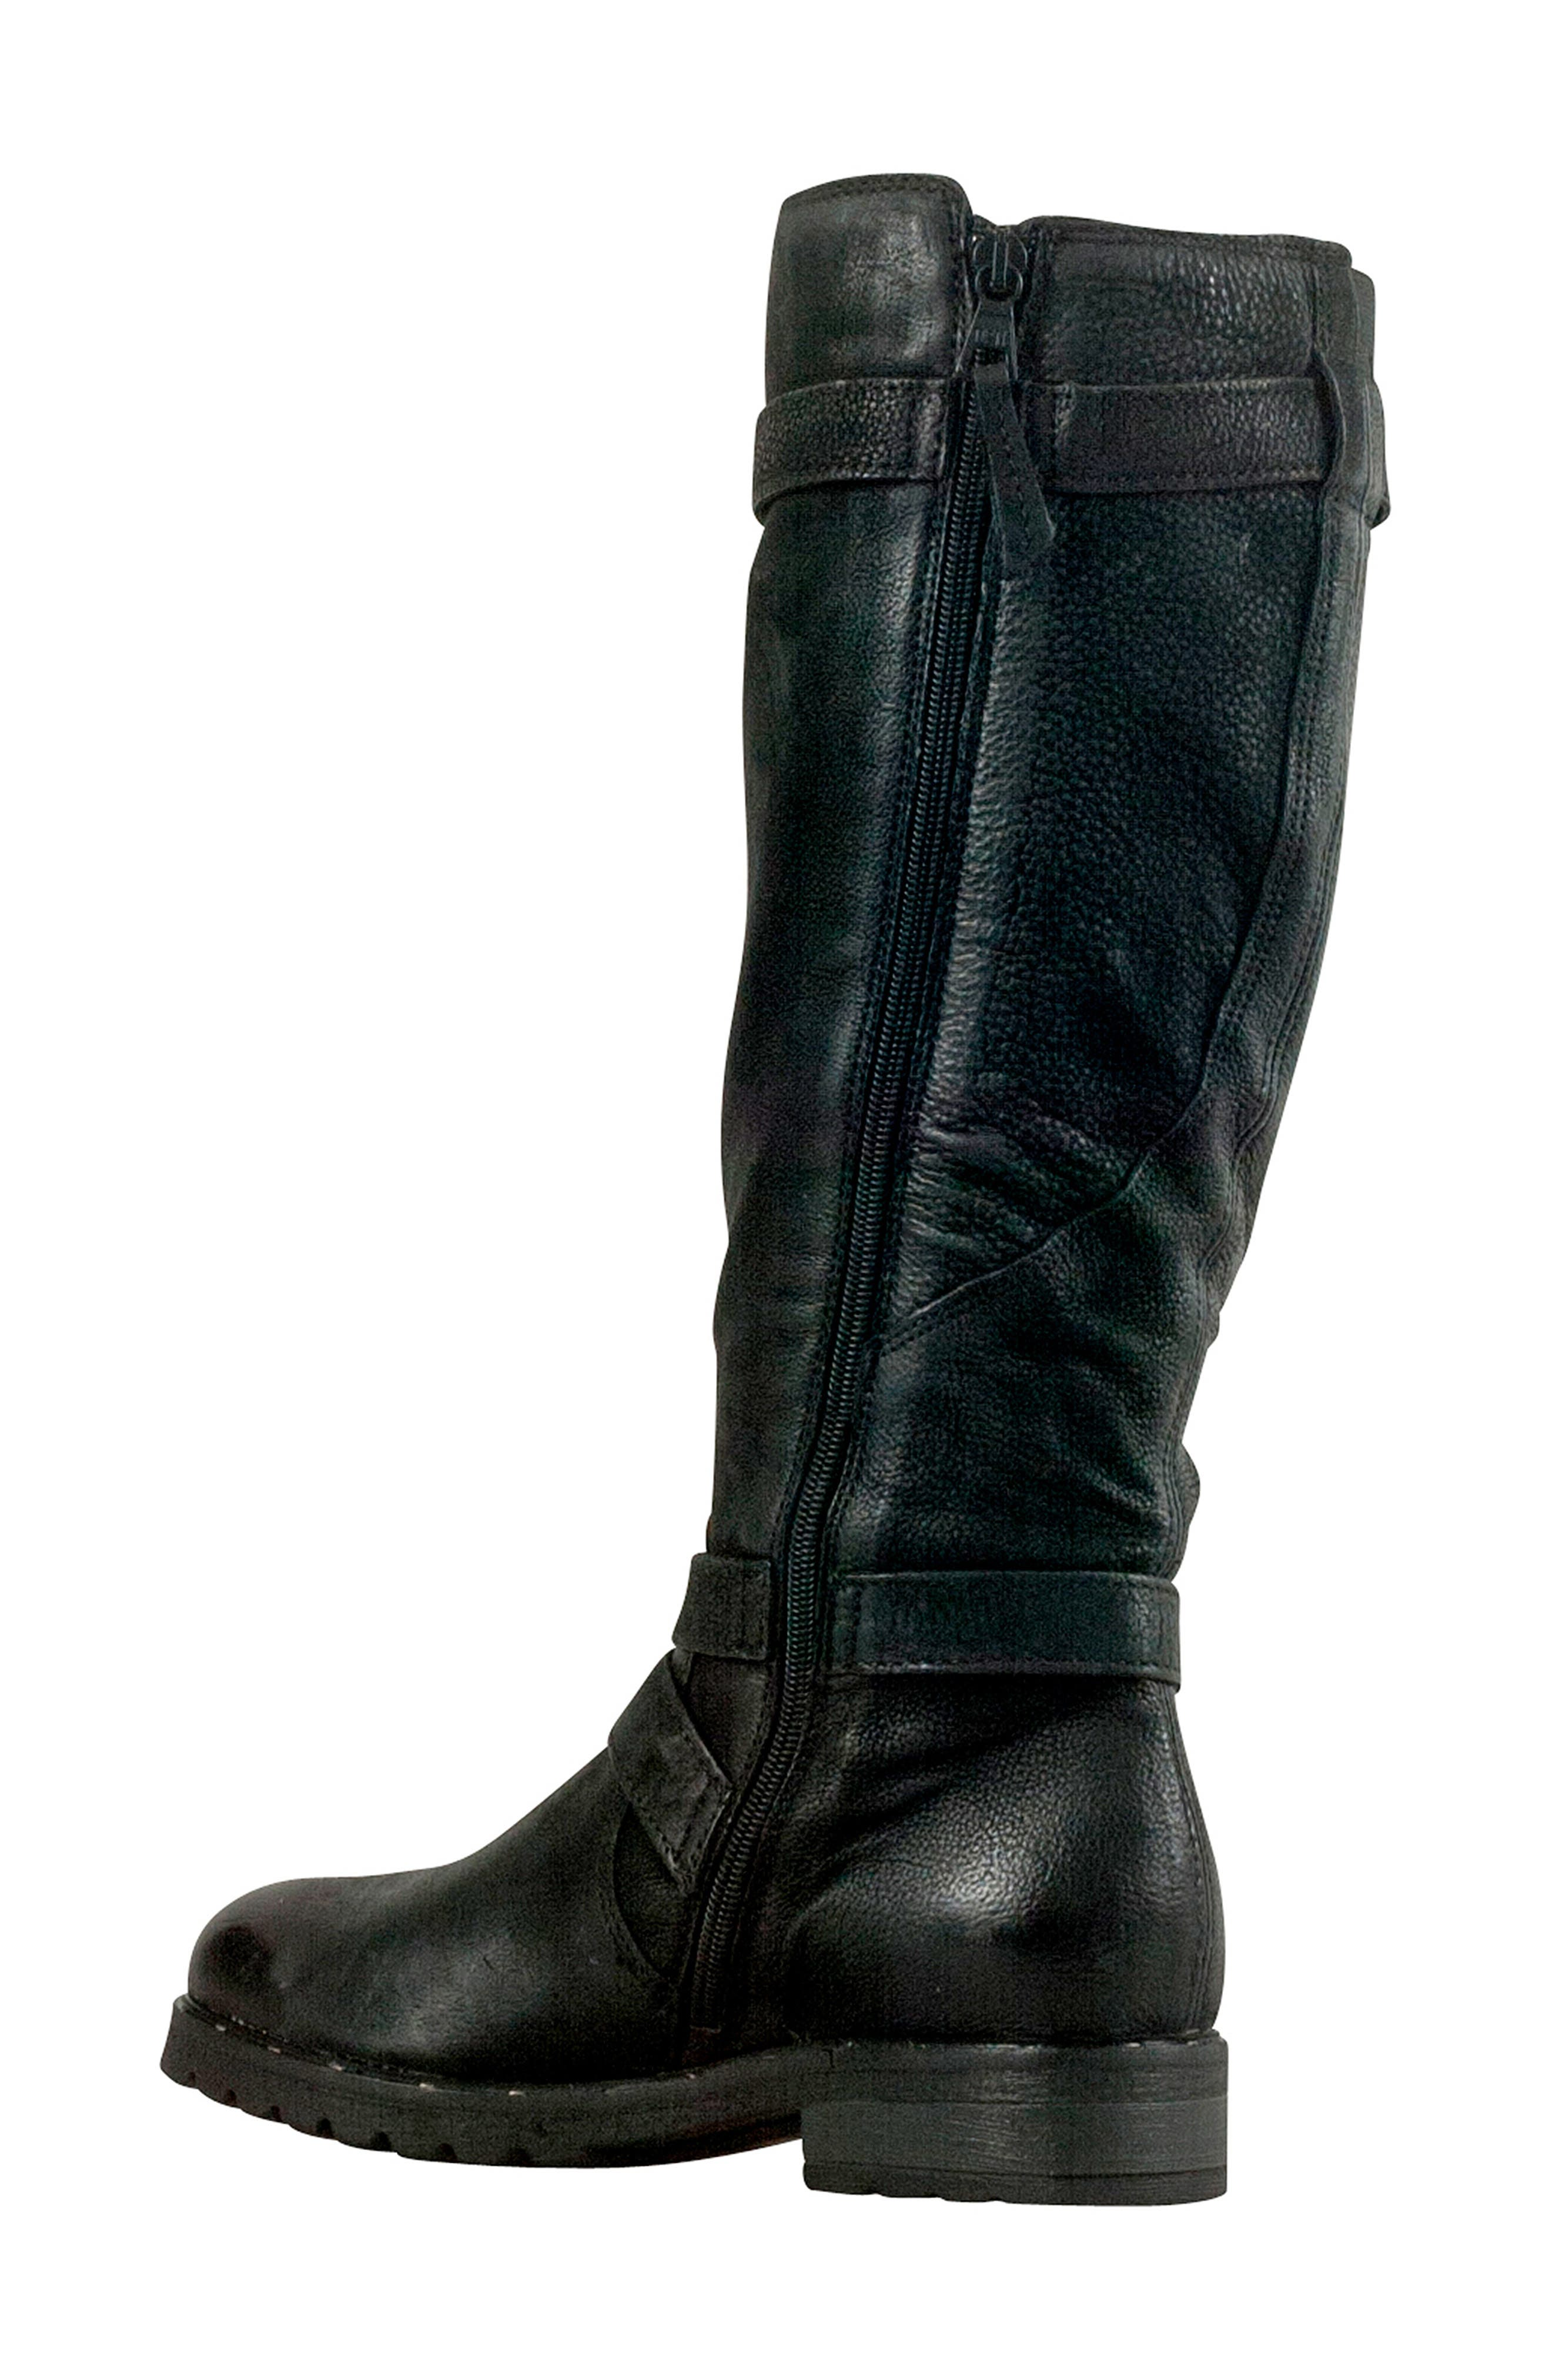 Prim Knee High Boot,                             Alternate thumbnail 2, color,                             BLACK LEATHER